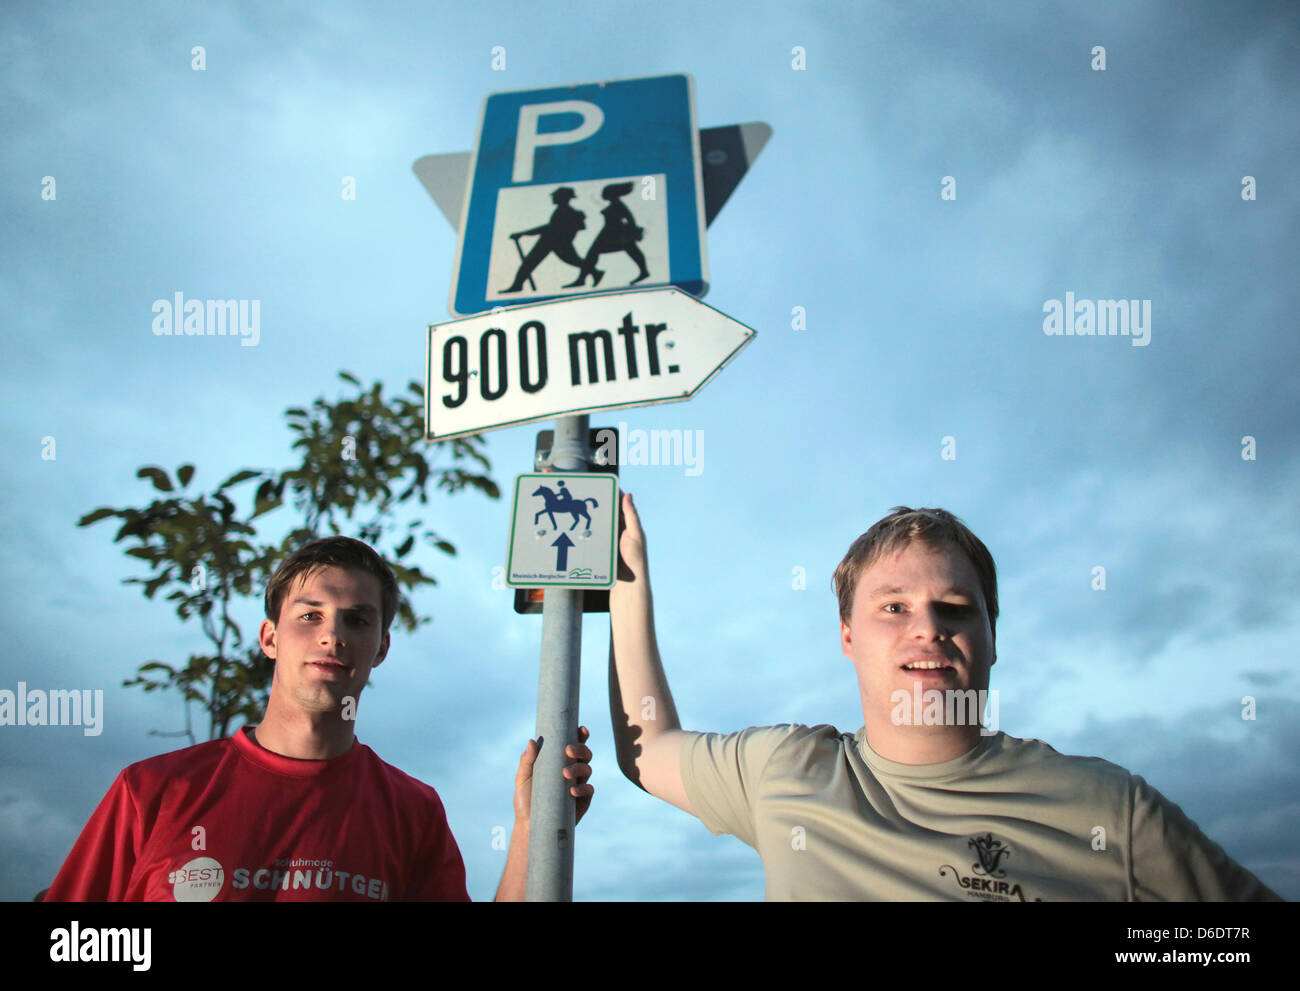 Extreme hicker Dennis Bettin(L)and friend Marco Storsberg stand in a parking lot for hikers in Wermelskirchen,Germany, - Stock Image